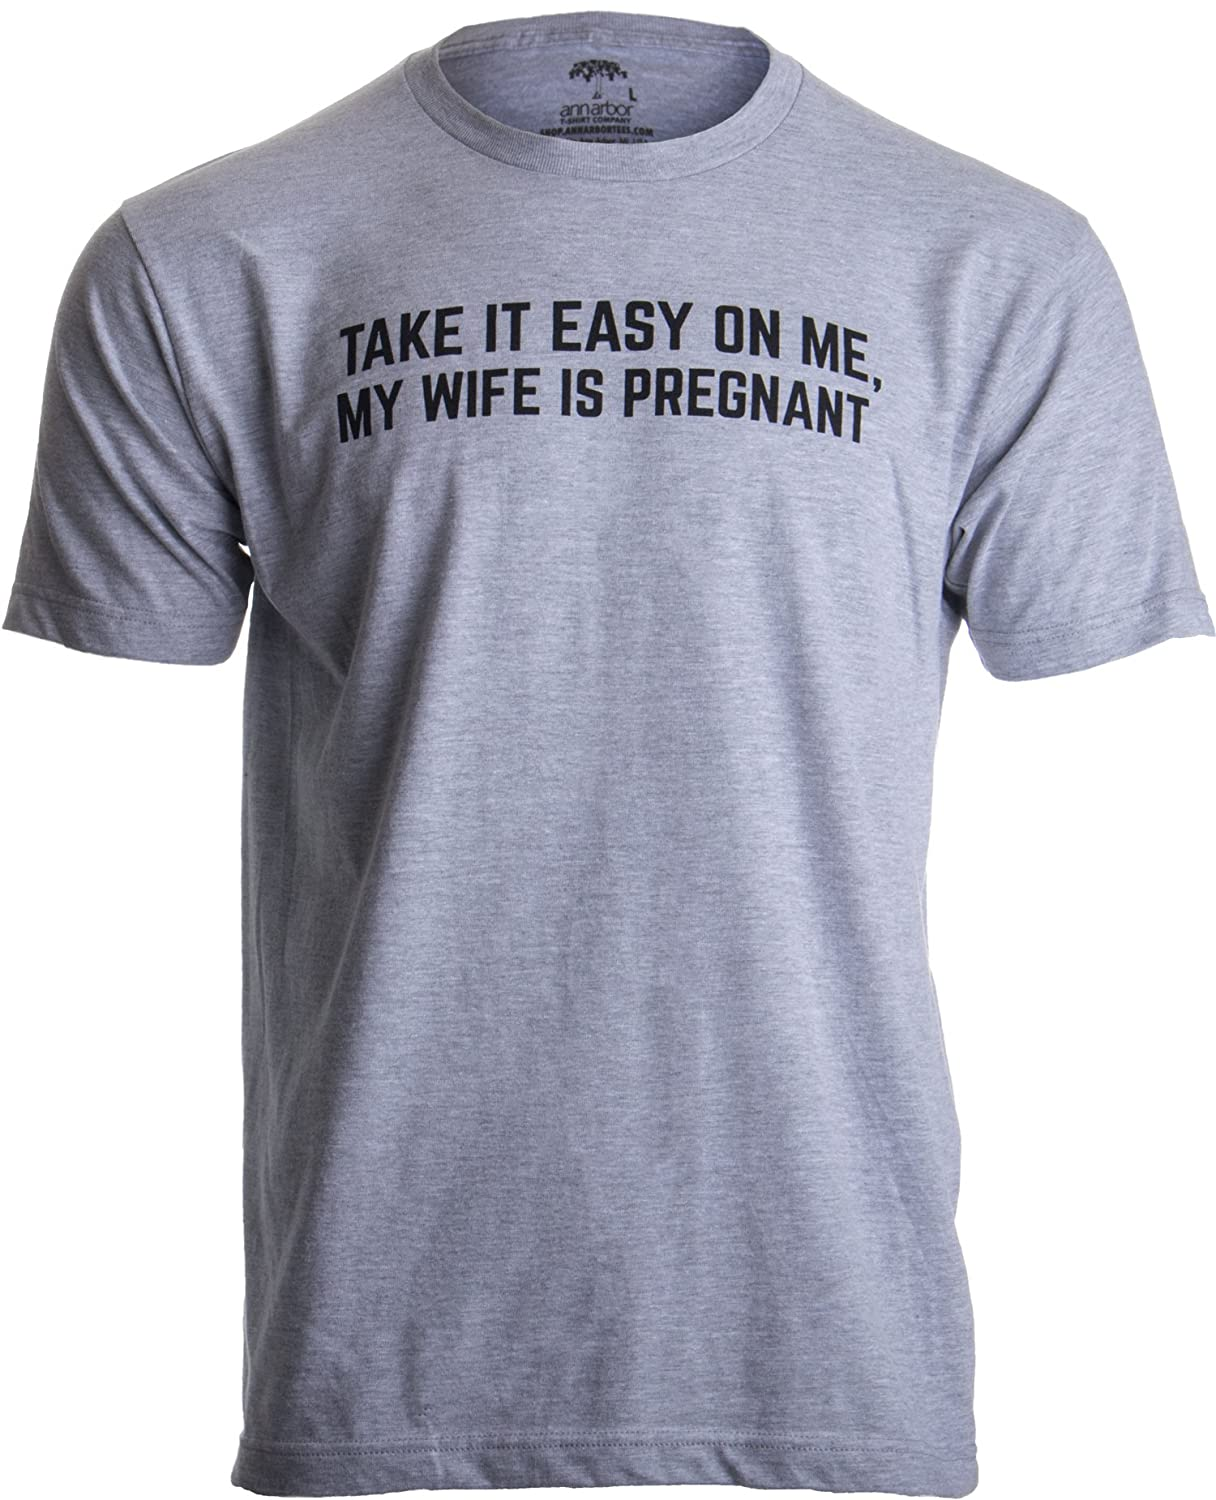 72a8d3a332976 Funny Pregnancy Shirts For Dads - DREAMWORKS